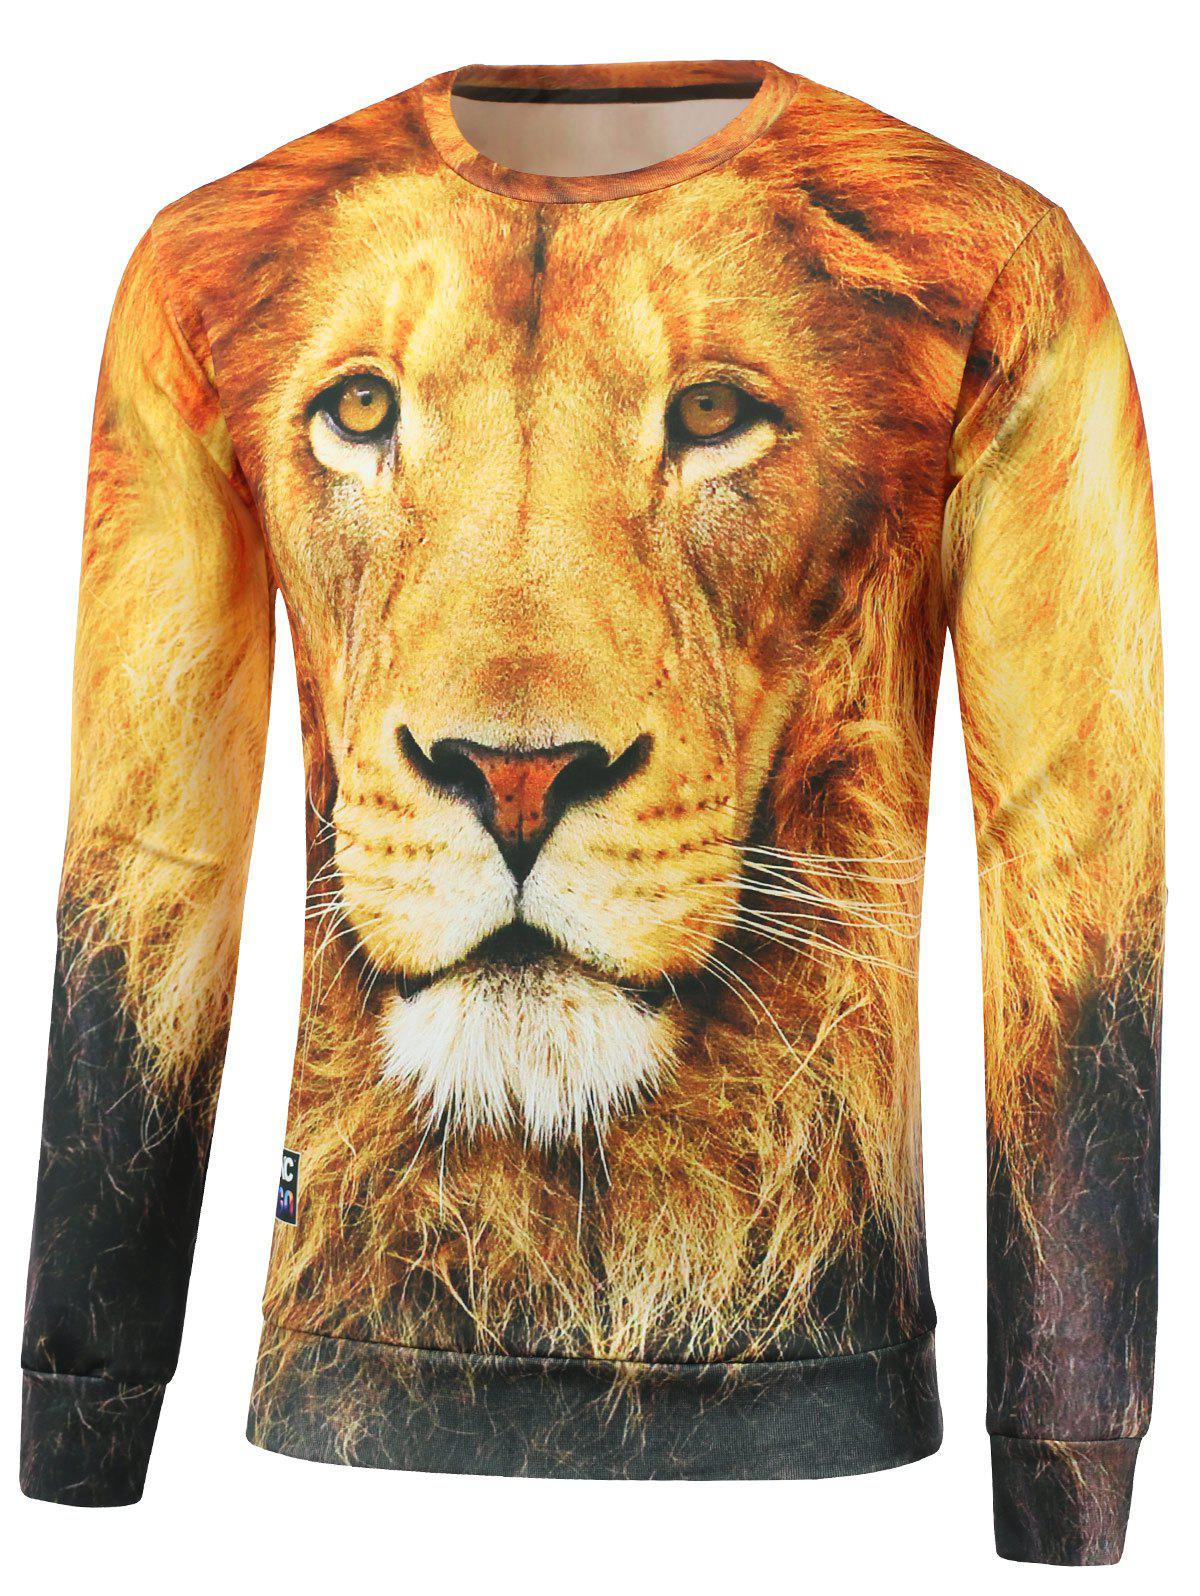 Crew Neck Lion Printed Sweatshirt - YELLOW S